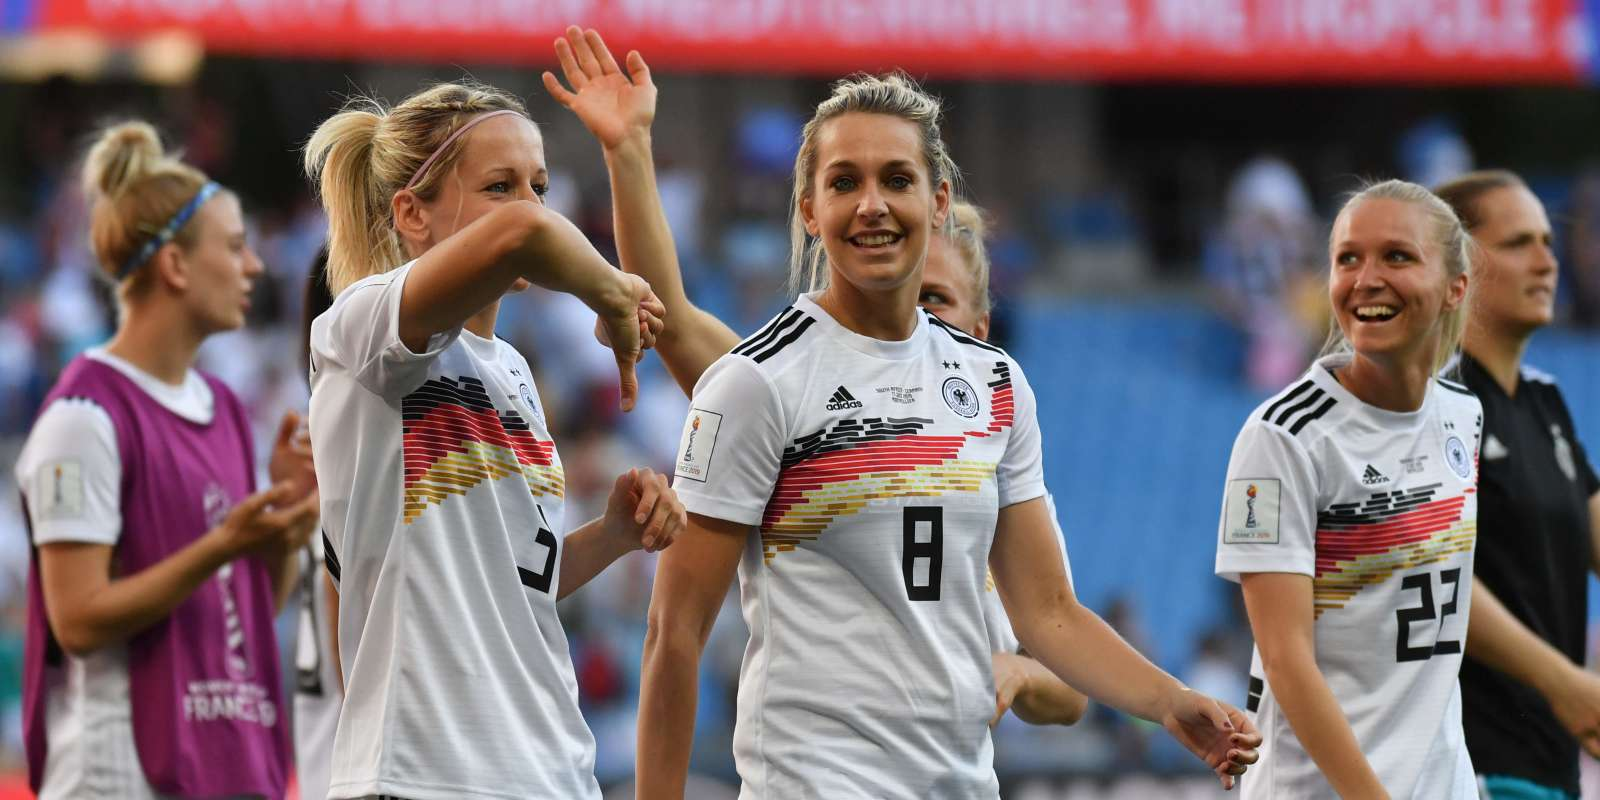 Germany's players celebrate after winning the France 2019 Women's World Cup Group B football match between South Africa and Germany, on June 17, 2019, at the Mosson Stadium in Montpellier, southern France. / AFP / Pascal GUYOT